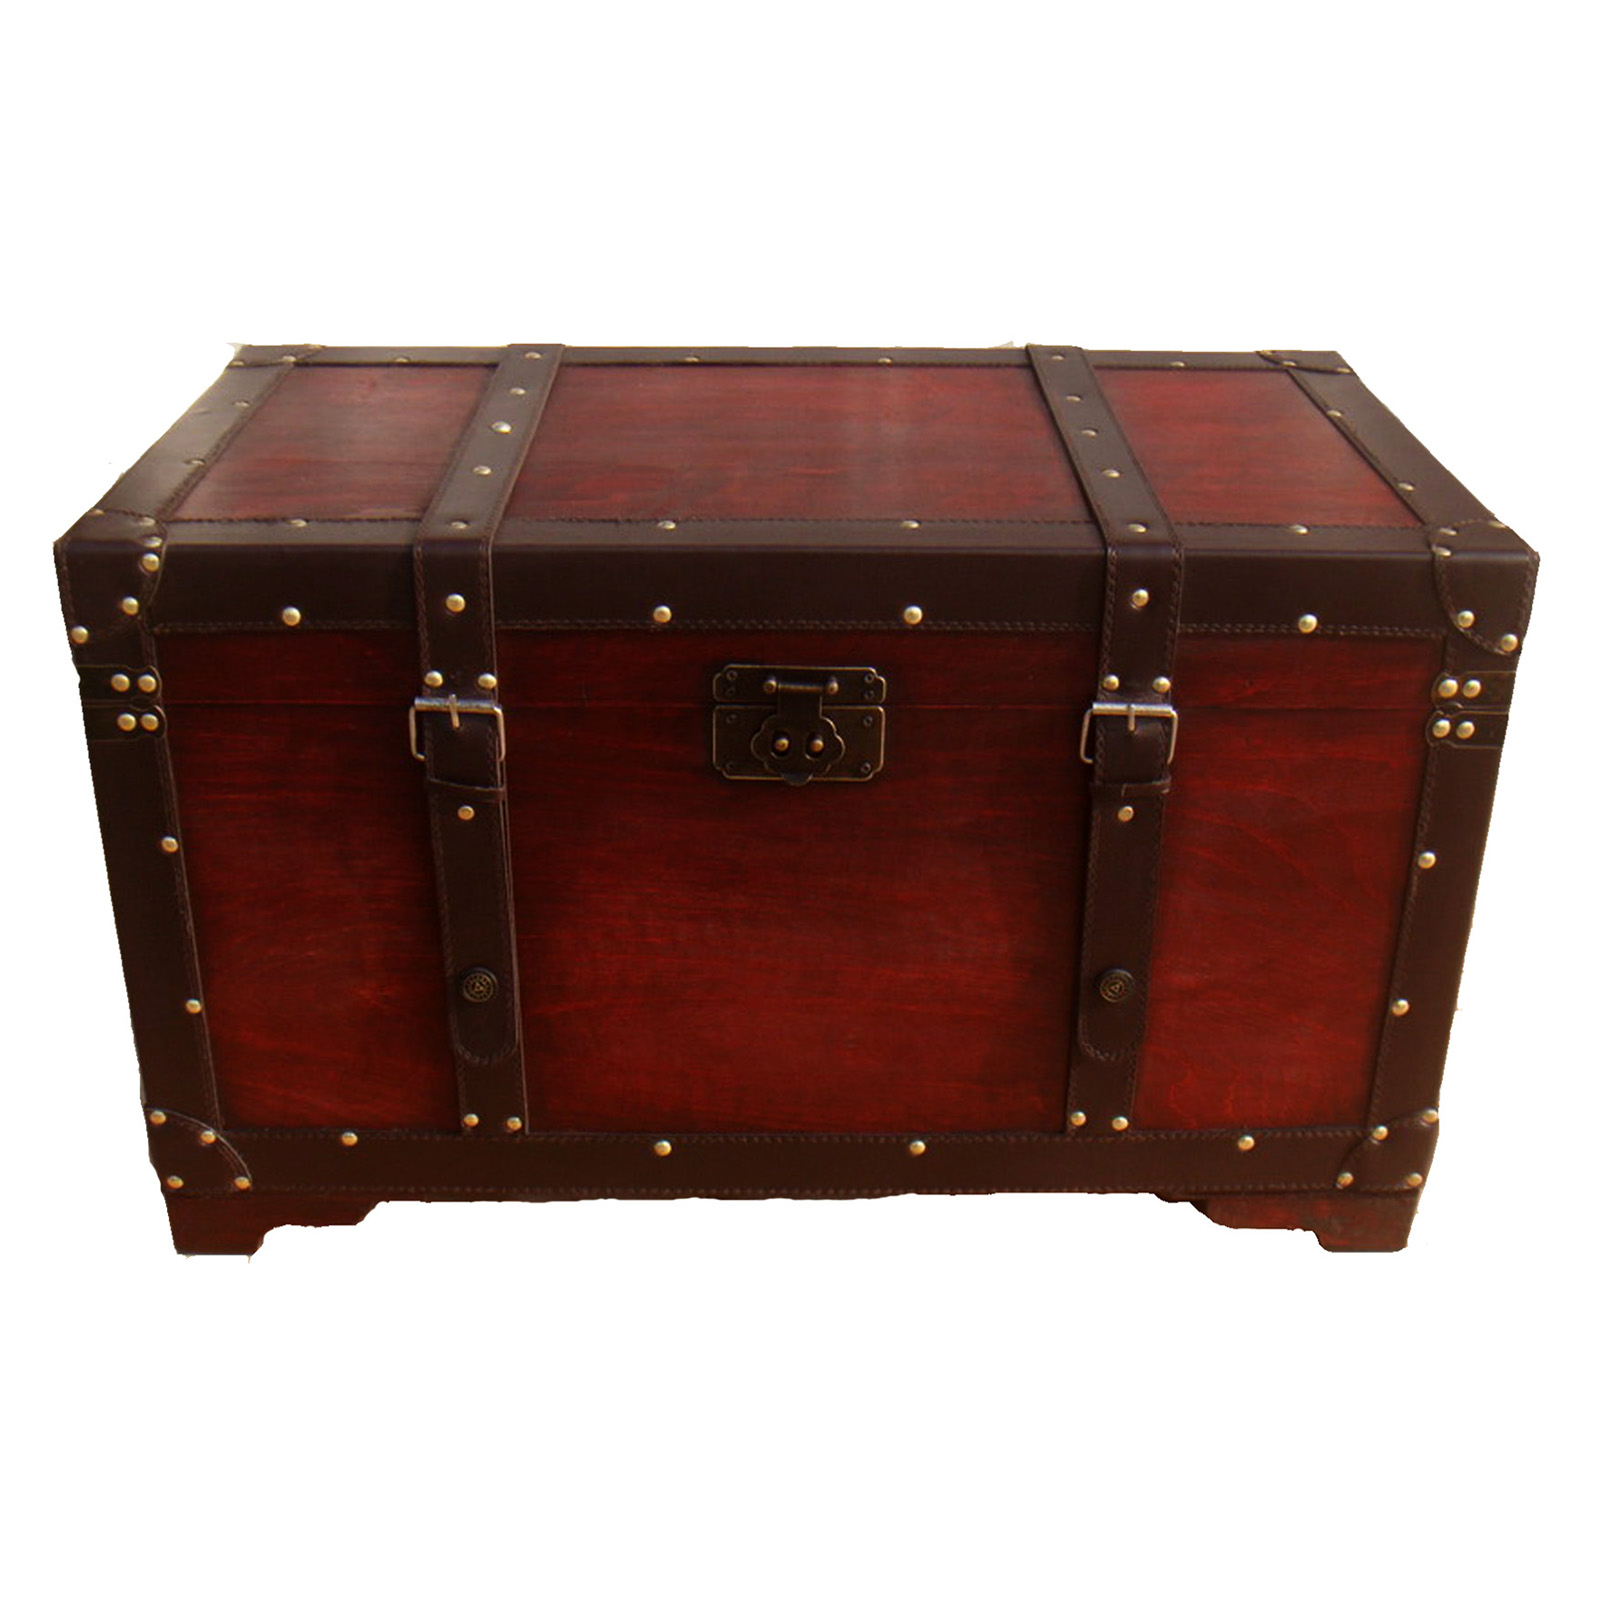 Best Phat Tommy Old School Retro Decorative Steamer Trunk At This Month